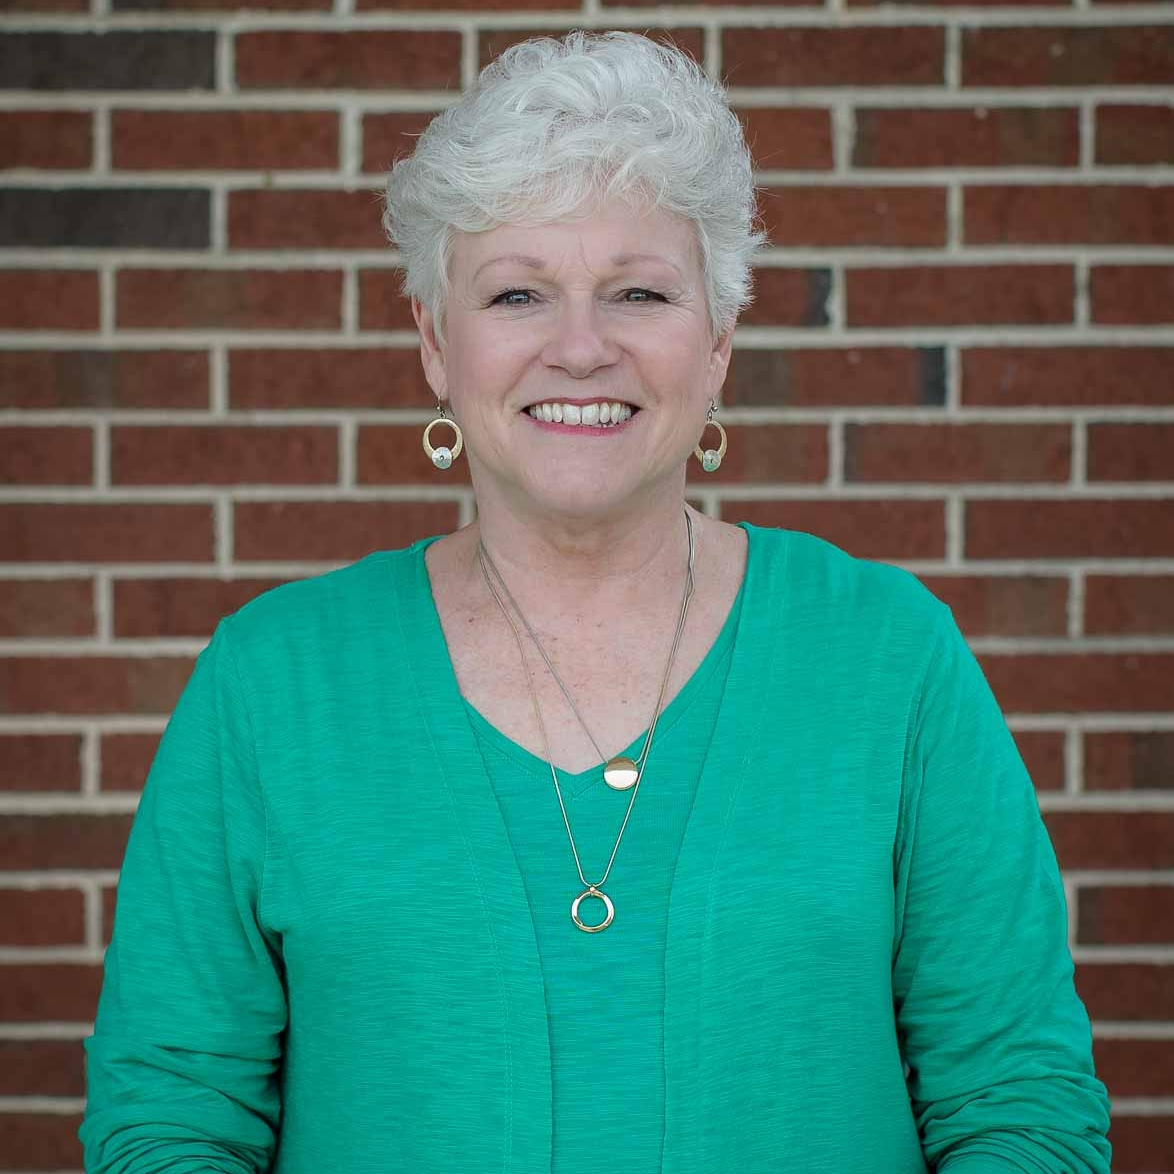 Angie grew up in the church and was baptized at the age of 8. Though she thought she knew all the answers, she feels as though she truly began following Jesus at age 16. She sensed the Lord's calling into ministry when she was 18. She began serving in the preschool ministry of FBC in 1979 and soon realized it was where she needed to be. She has served in various capacities at FBC Jacksonville since 1994 and has been the Director of Kids and Family Ministry since 2014. She earned a Bachelor of Science in Secondary Education from Jacksonville State University in 1976. Angie married Rick in 1976. They have three Children: Holly, April, and Zack. They have ten grandchildren. Angie's passion in ministry is to provide resources to encourage and equip parents as they help their children follow Jesus. She also seeks to provide a quality learning environment and spiritually enriching experiences where children can learn to love God, love others, and lovingly serve others.